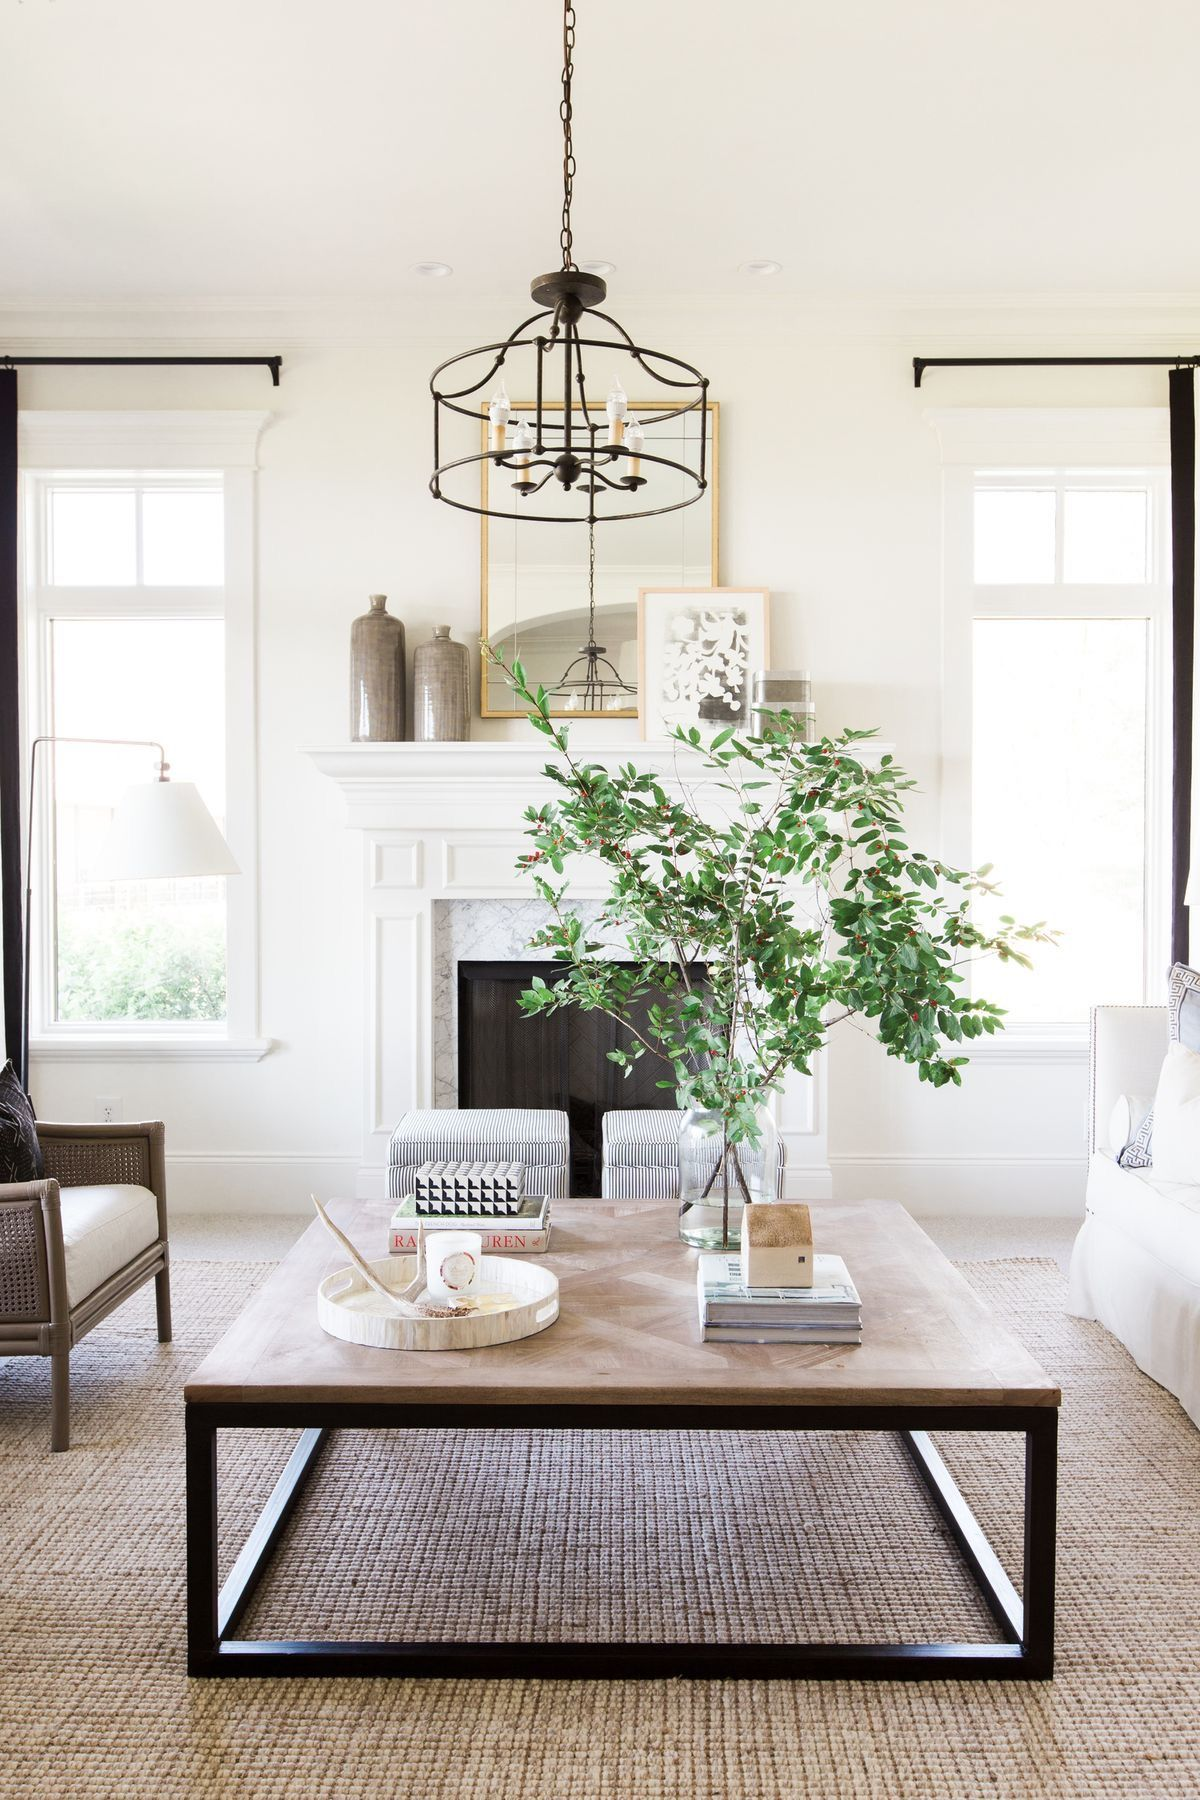 Modern Wood And Metal Coffee Table Greenery Centerpiece In Milk Jug Iron Light Fixture White Couch